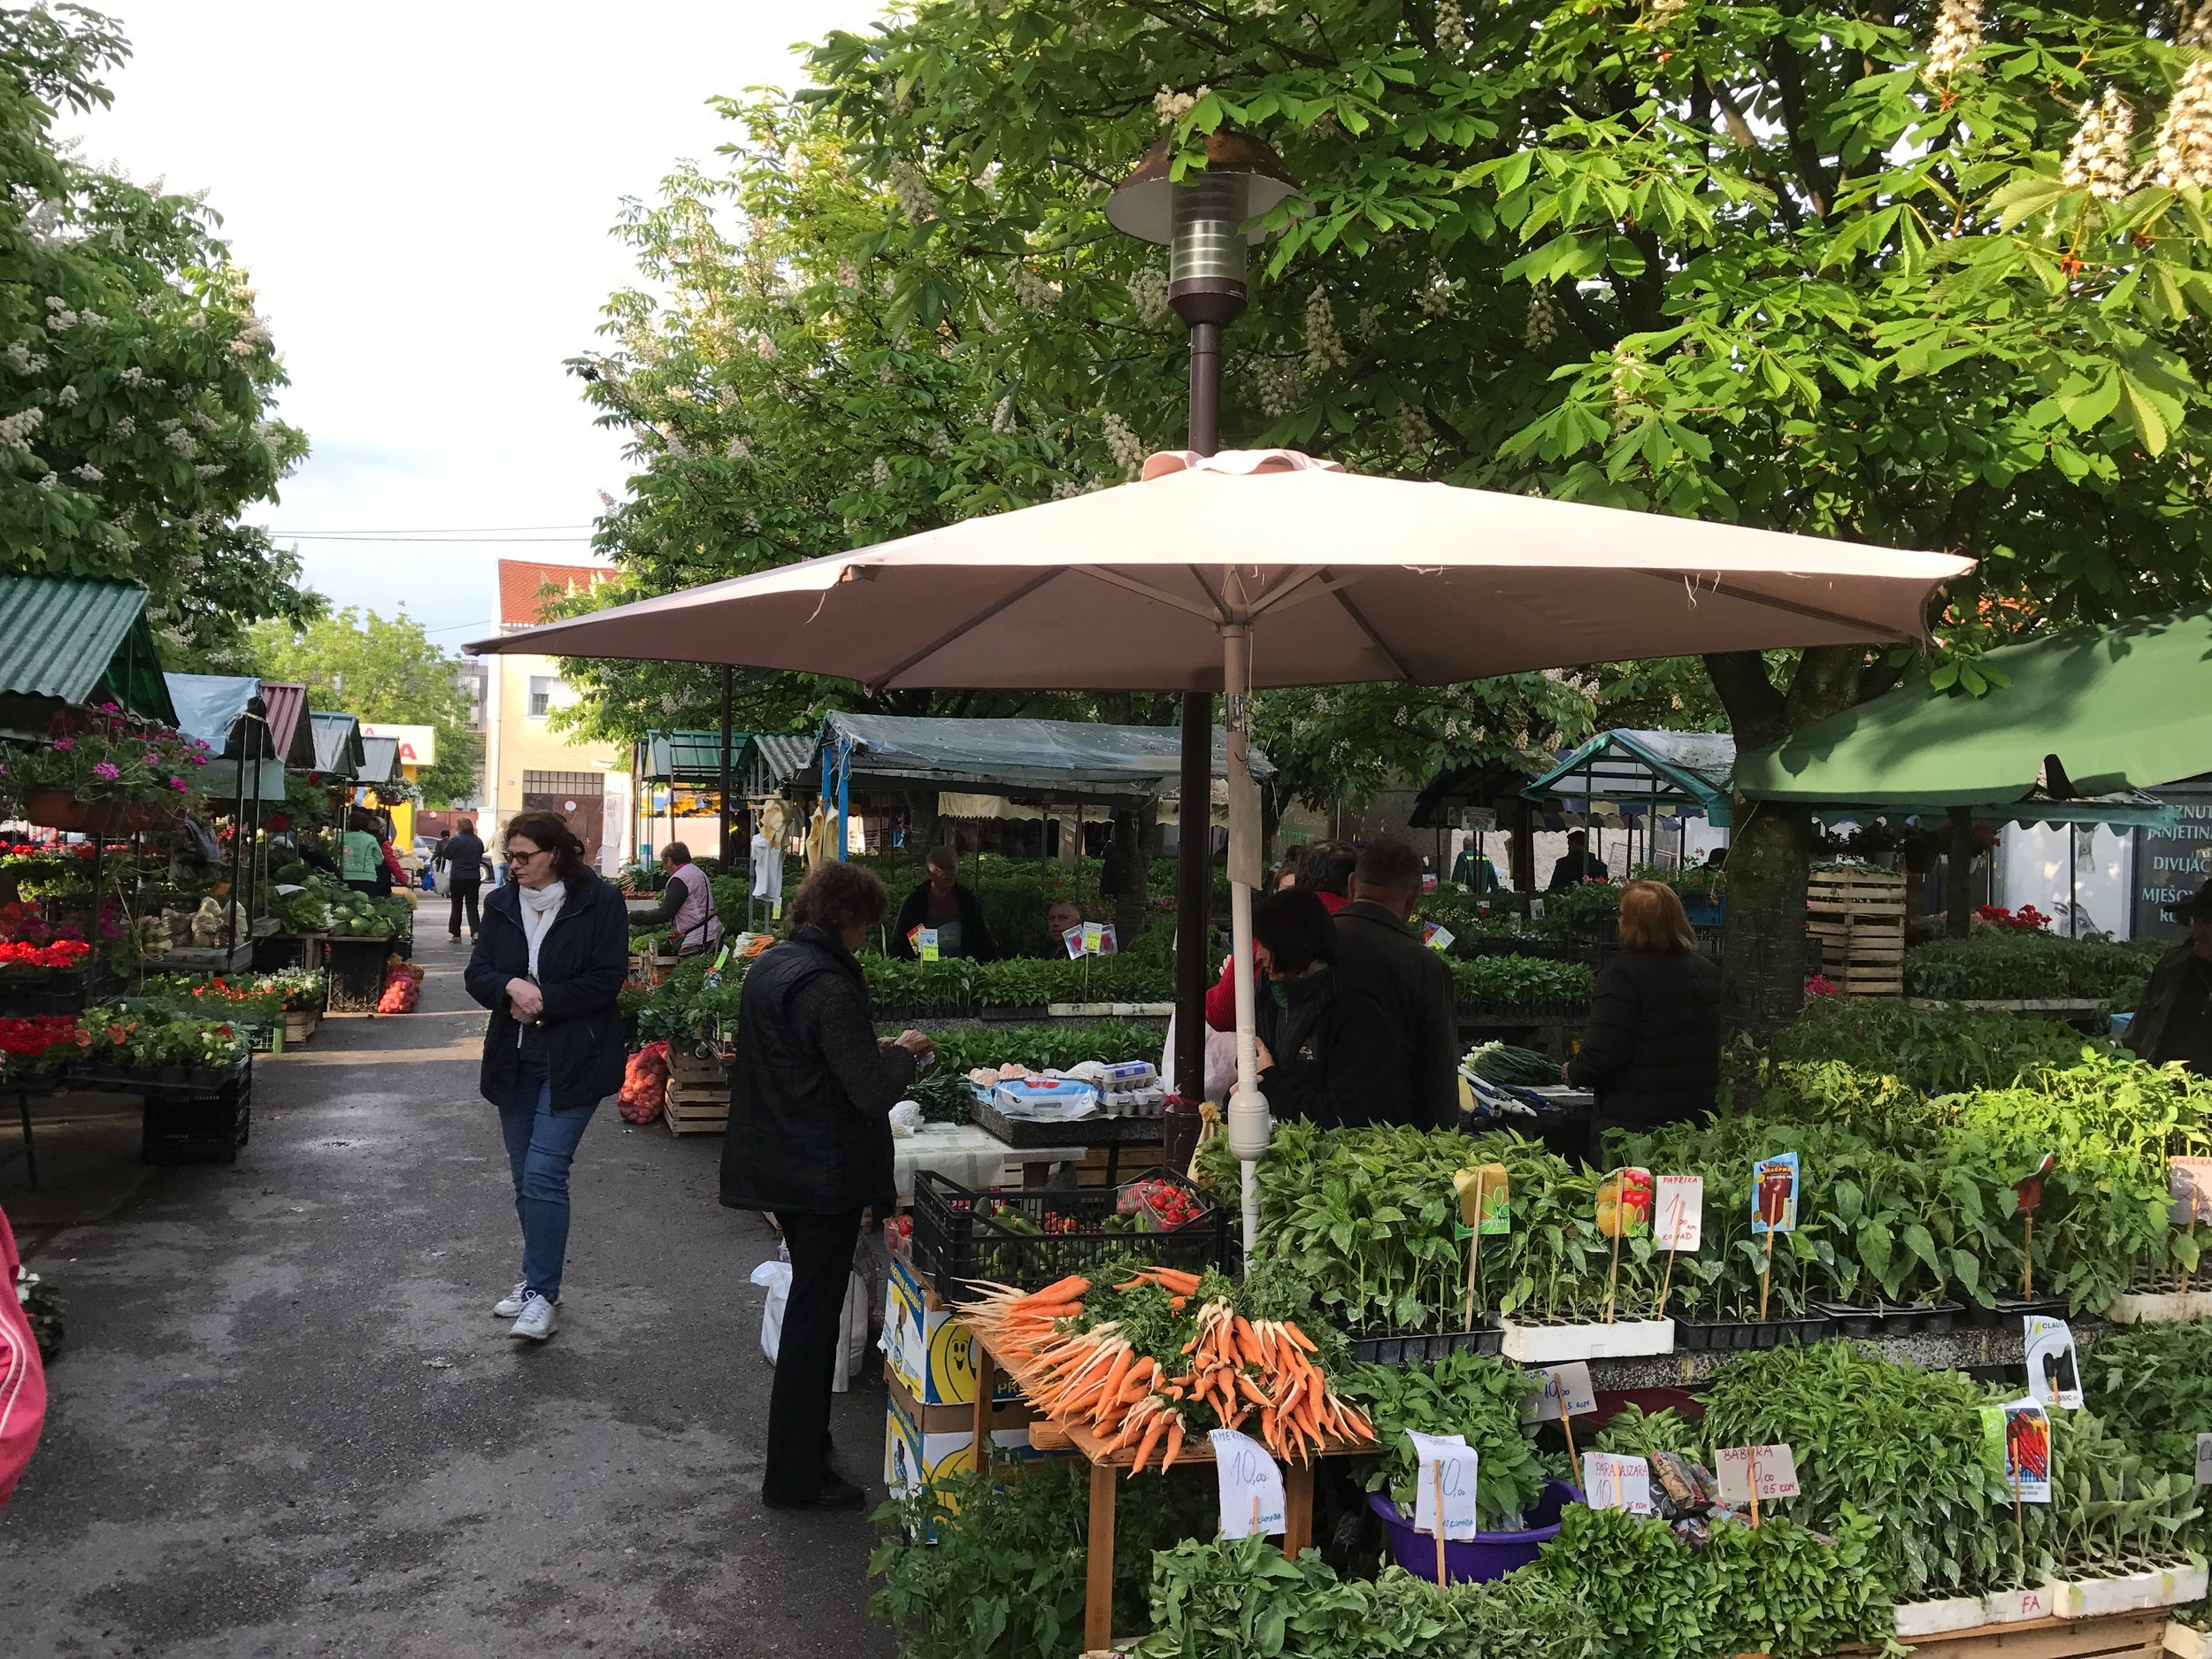 The farmer's market in N. Gradiska